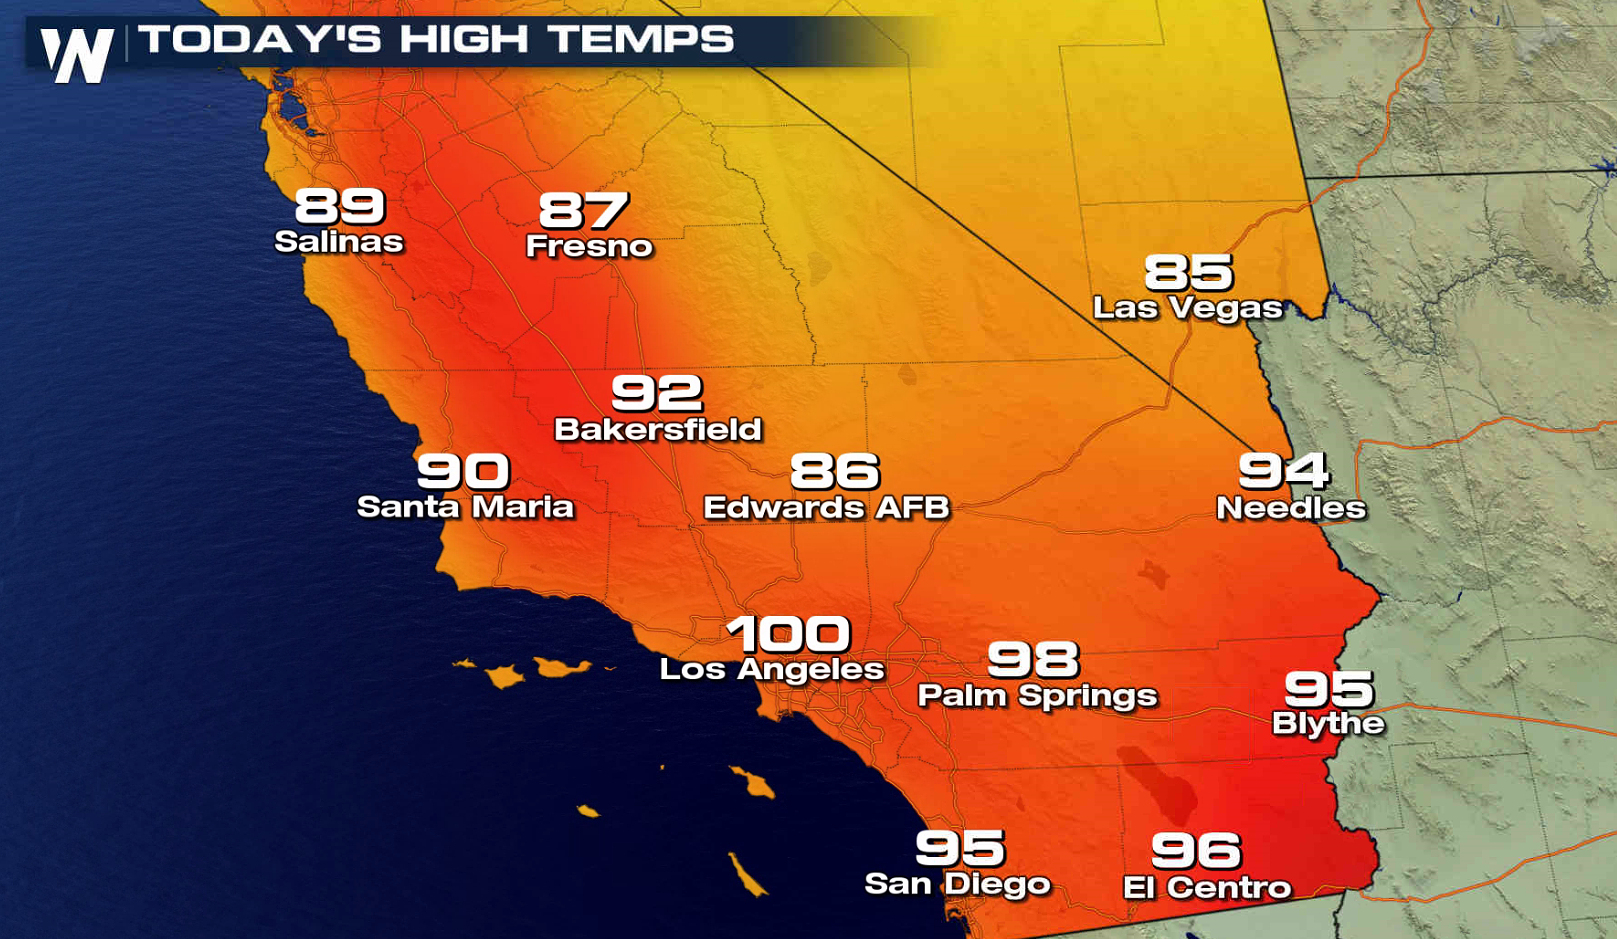 Record Heat Southern California California Map With Cities - Weather Heat Map California